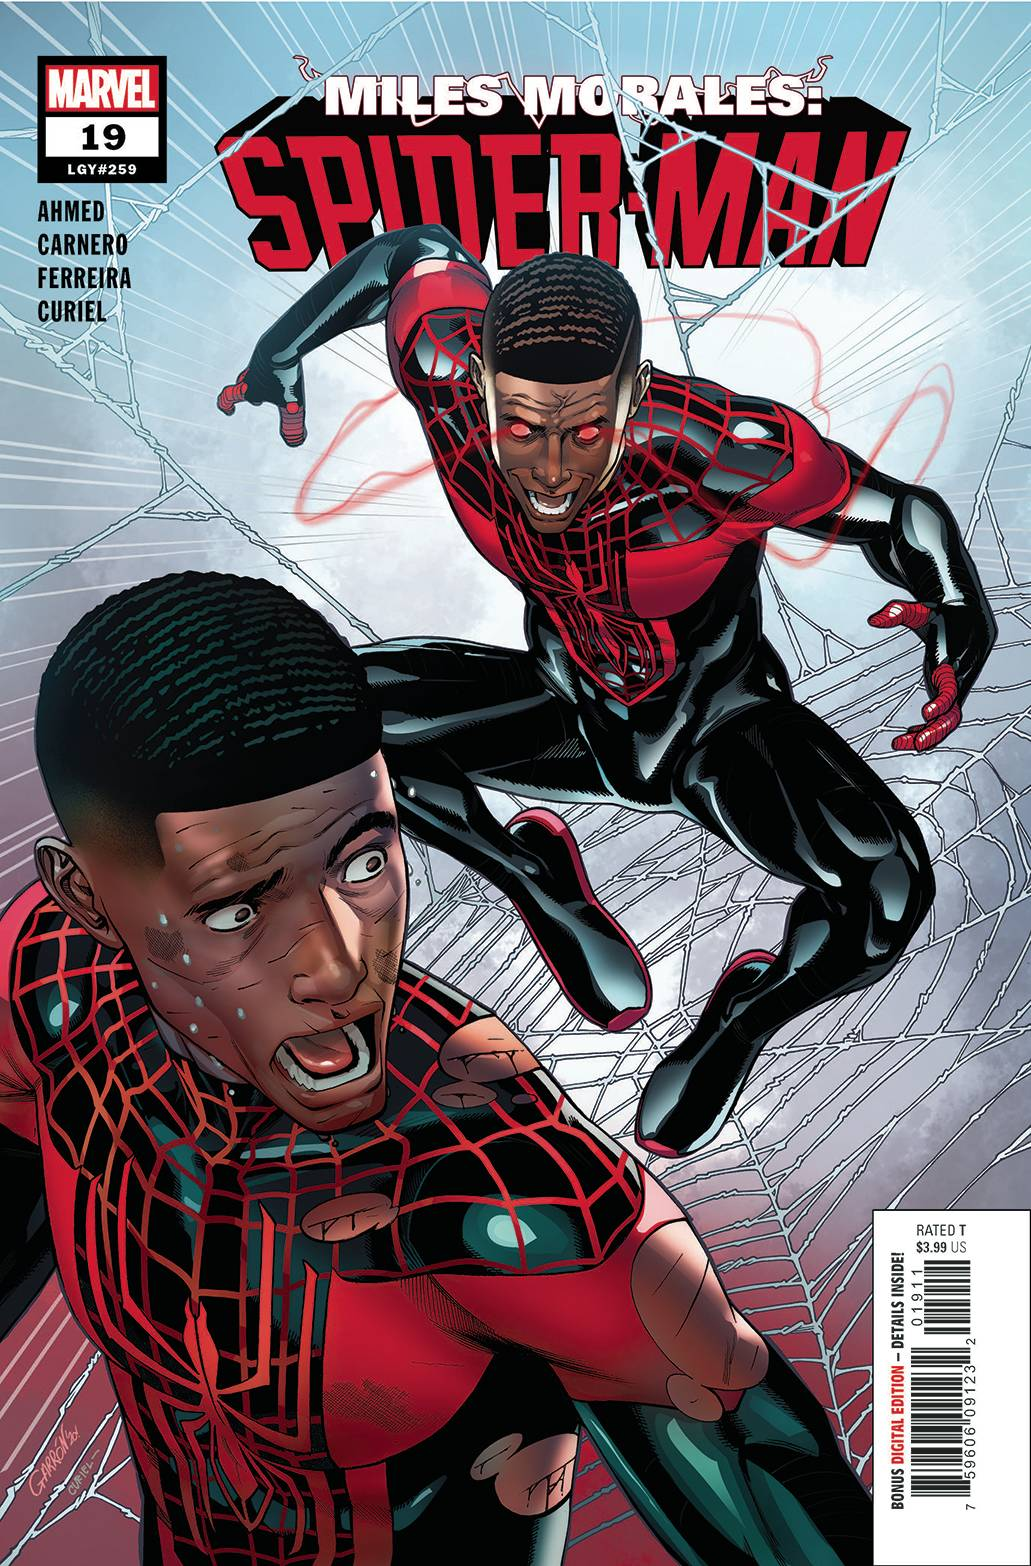 MILES MORALES SPIDER-MAN #19 OUT